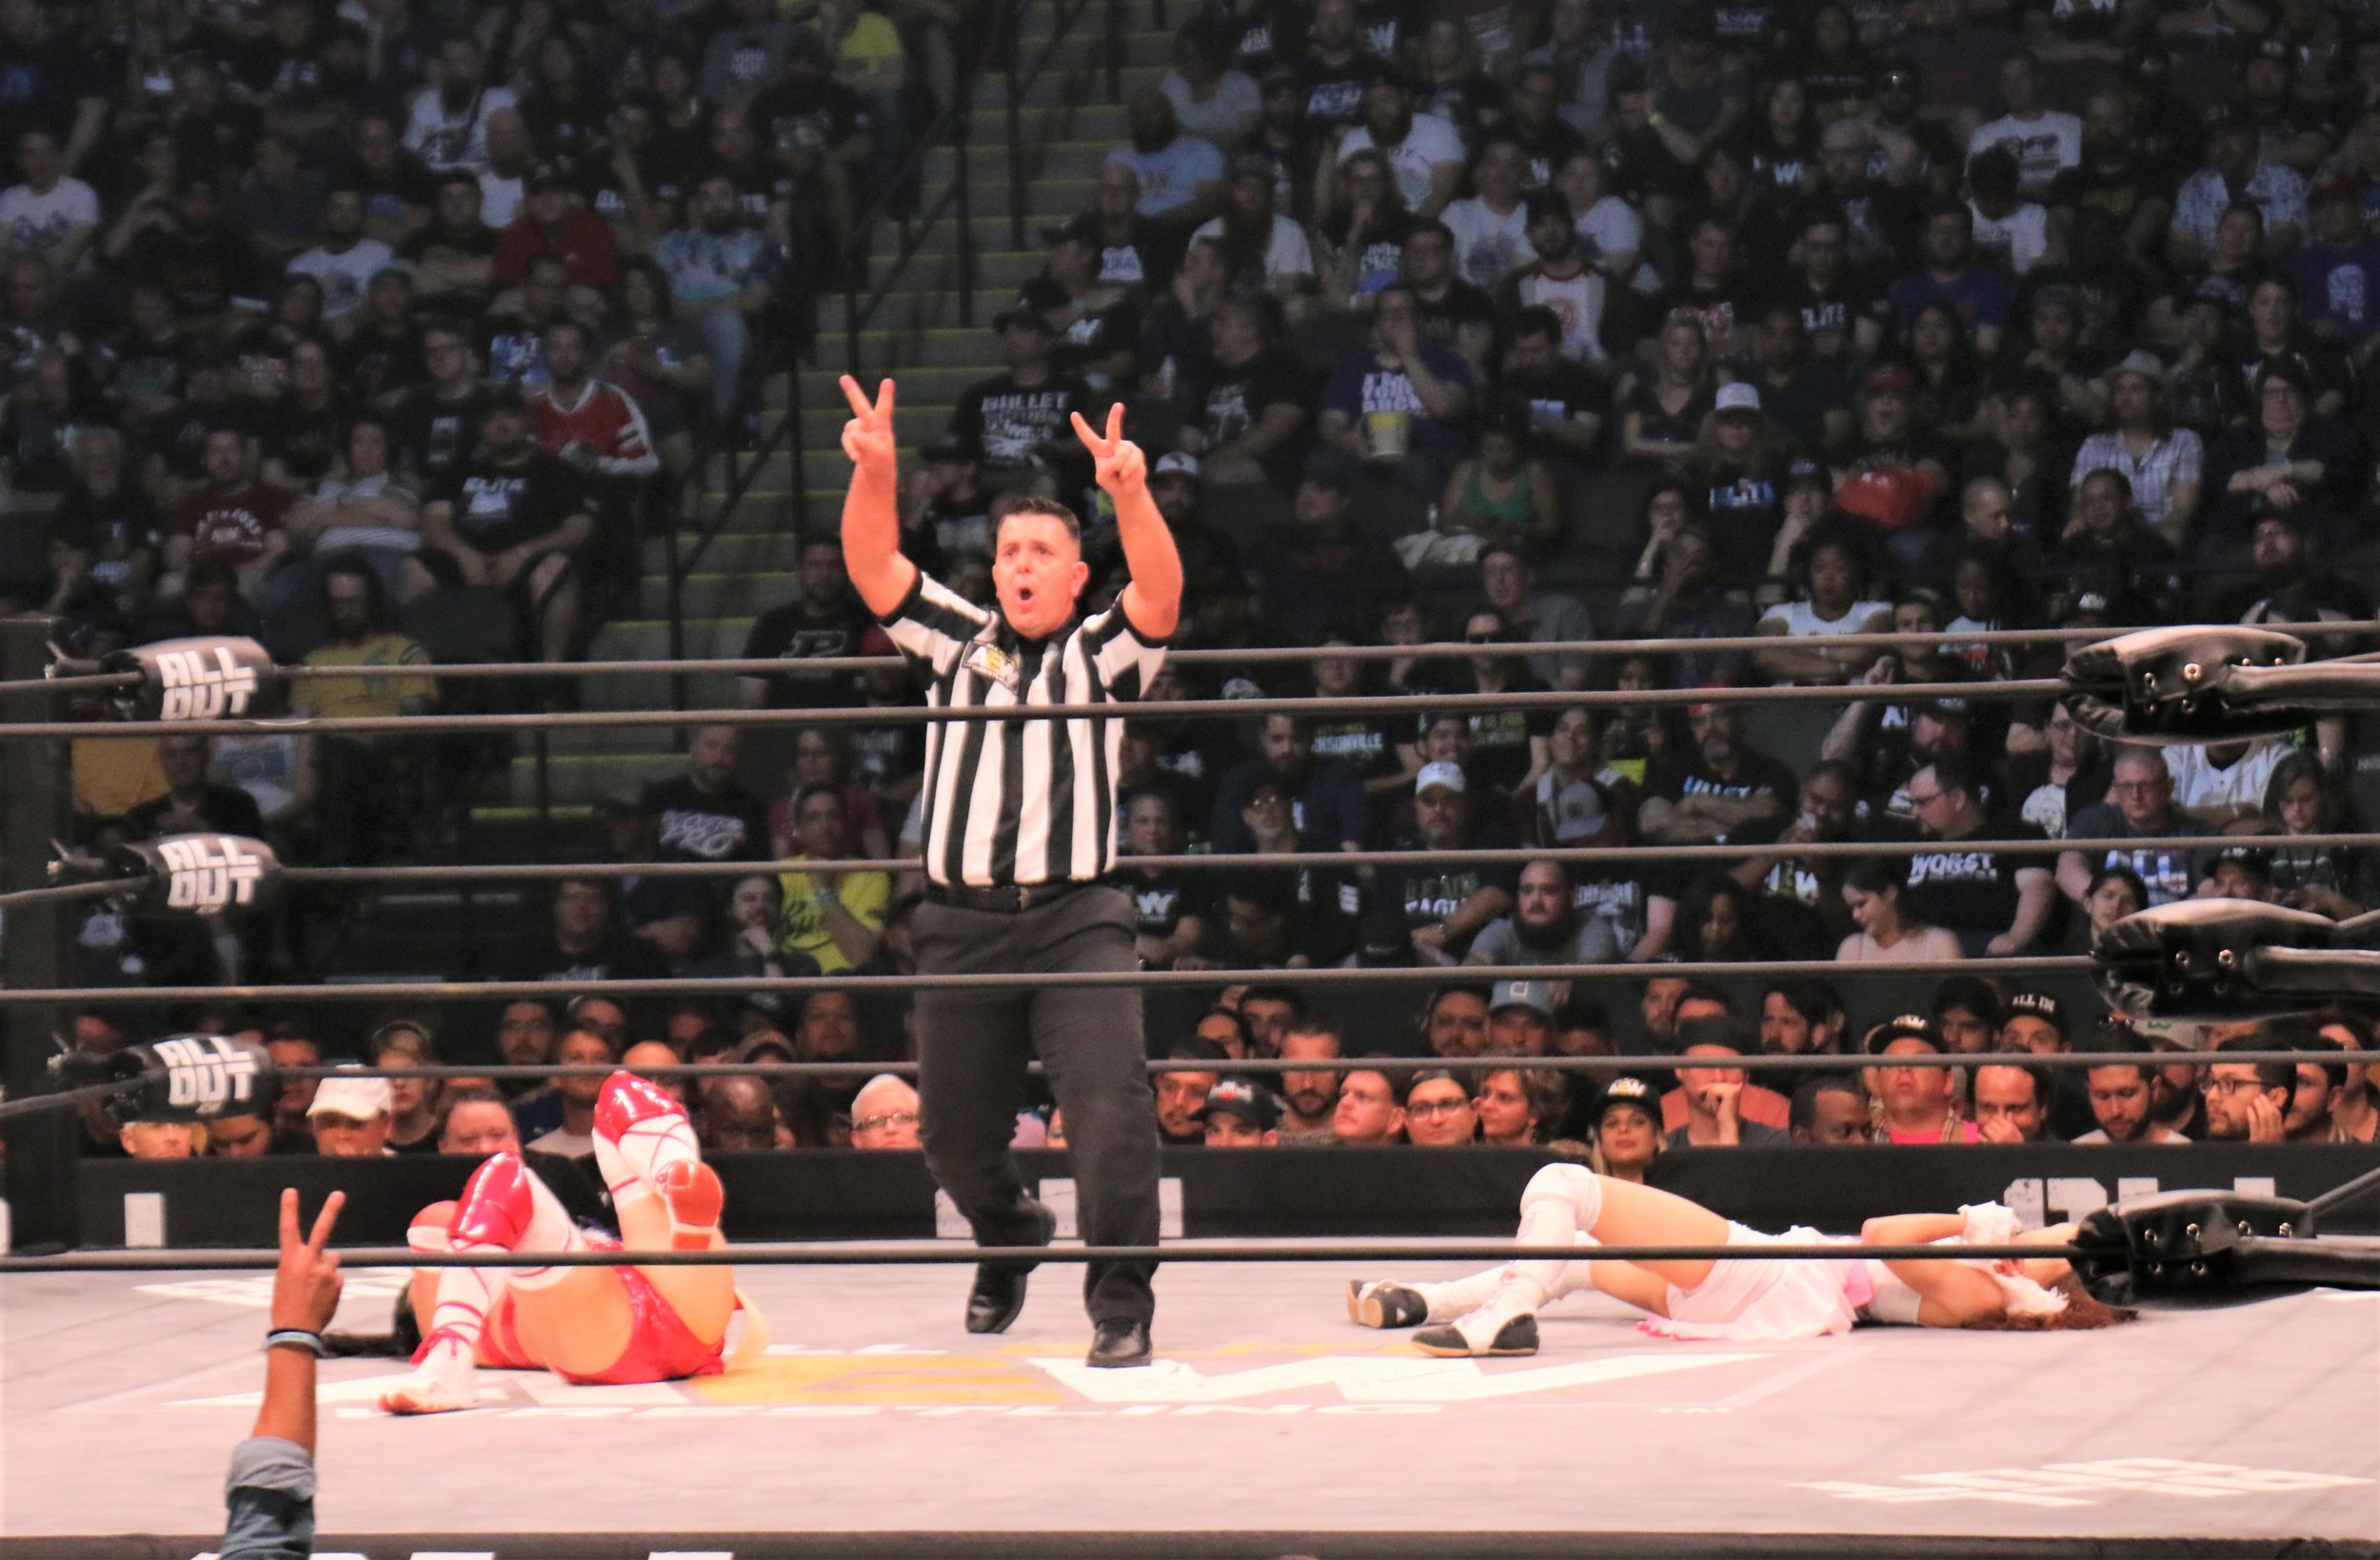 Referee Paul Turner puts the double count on Hikaru Shida and Riho.